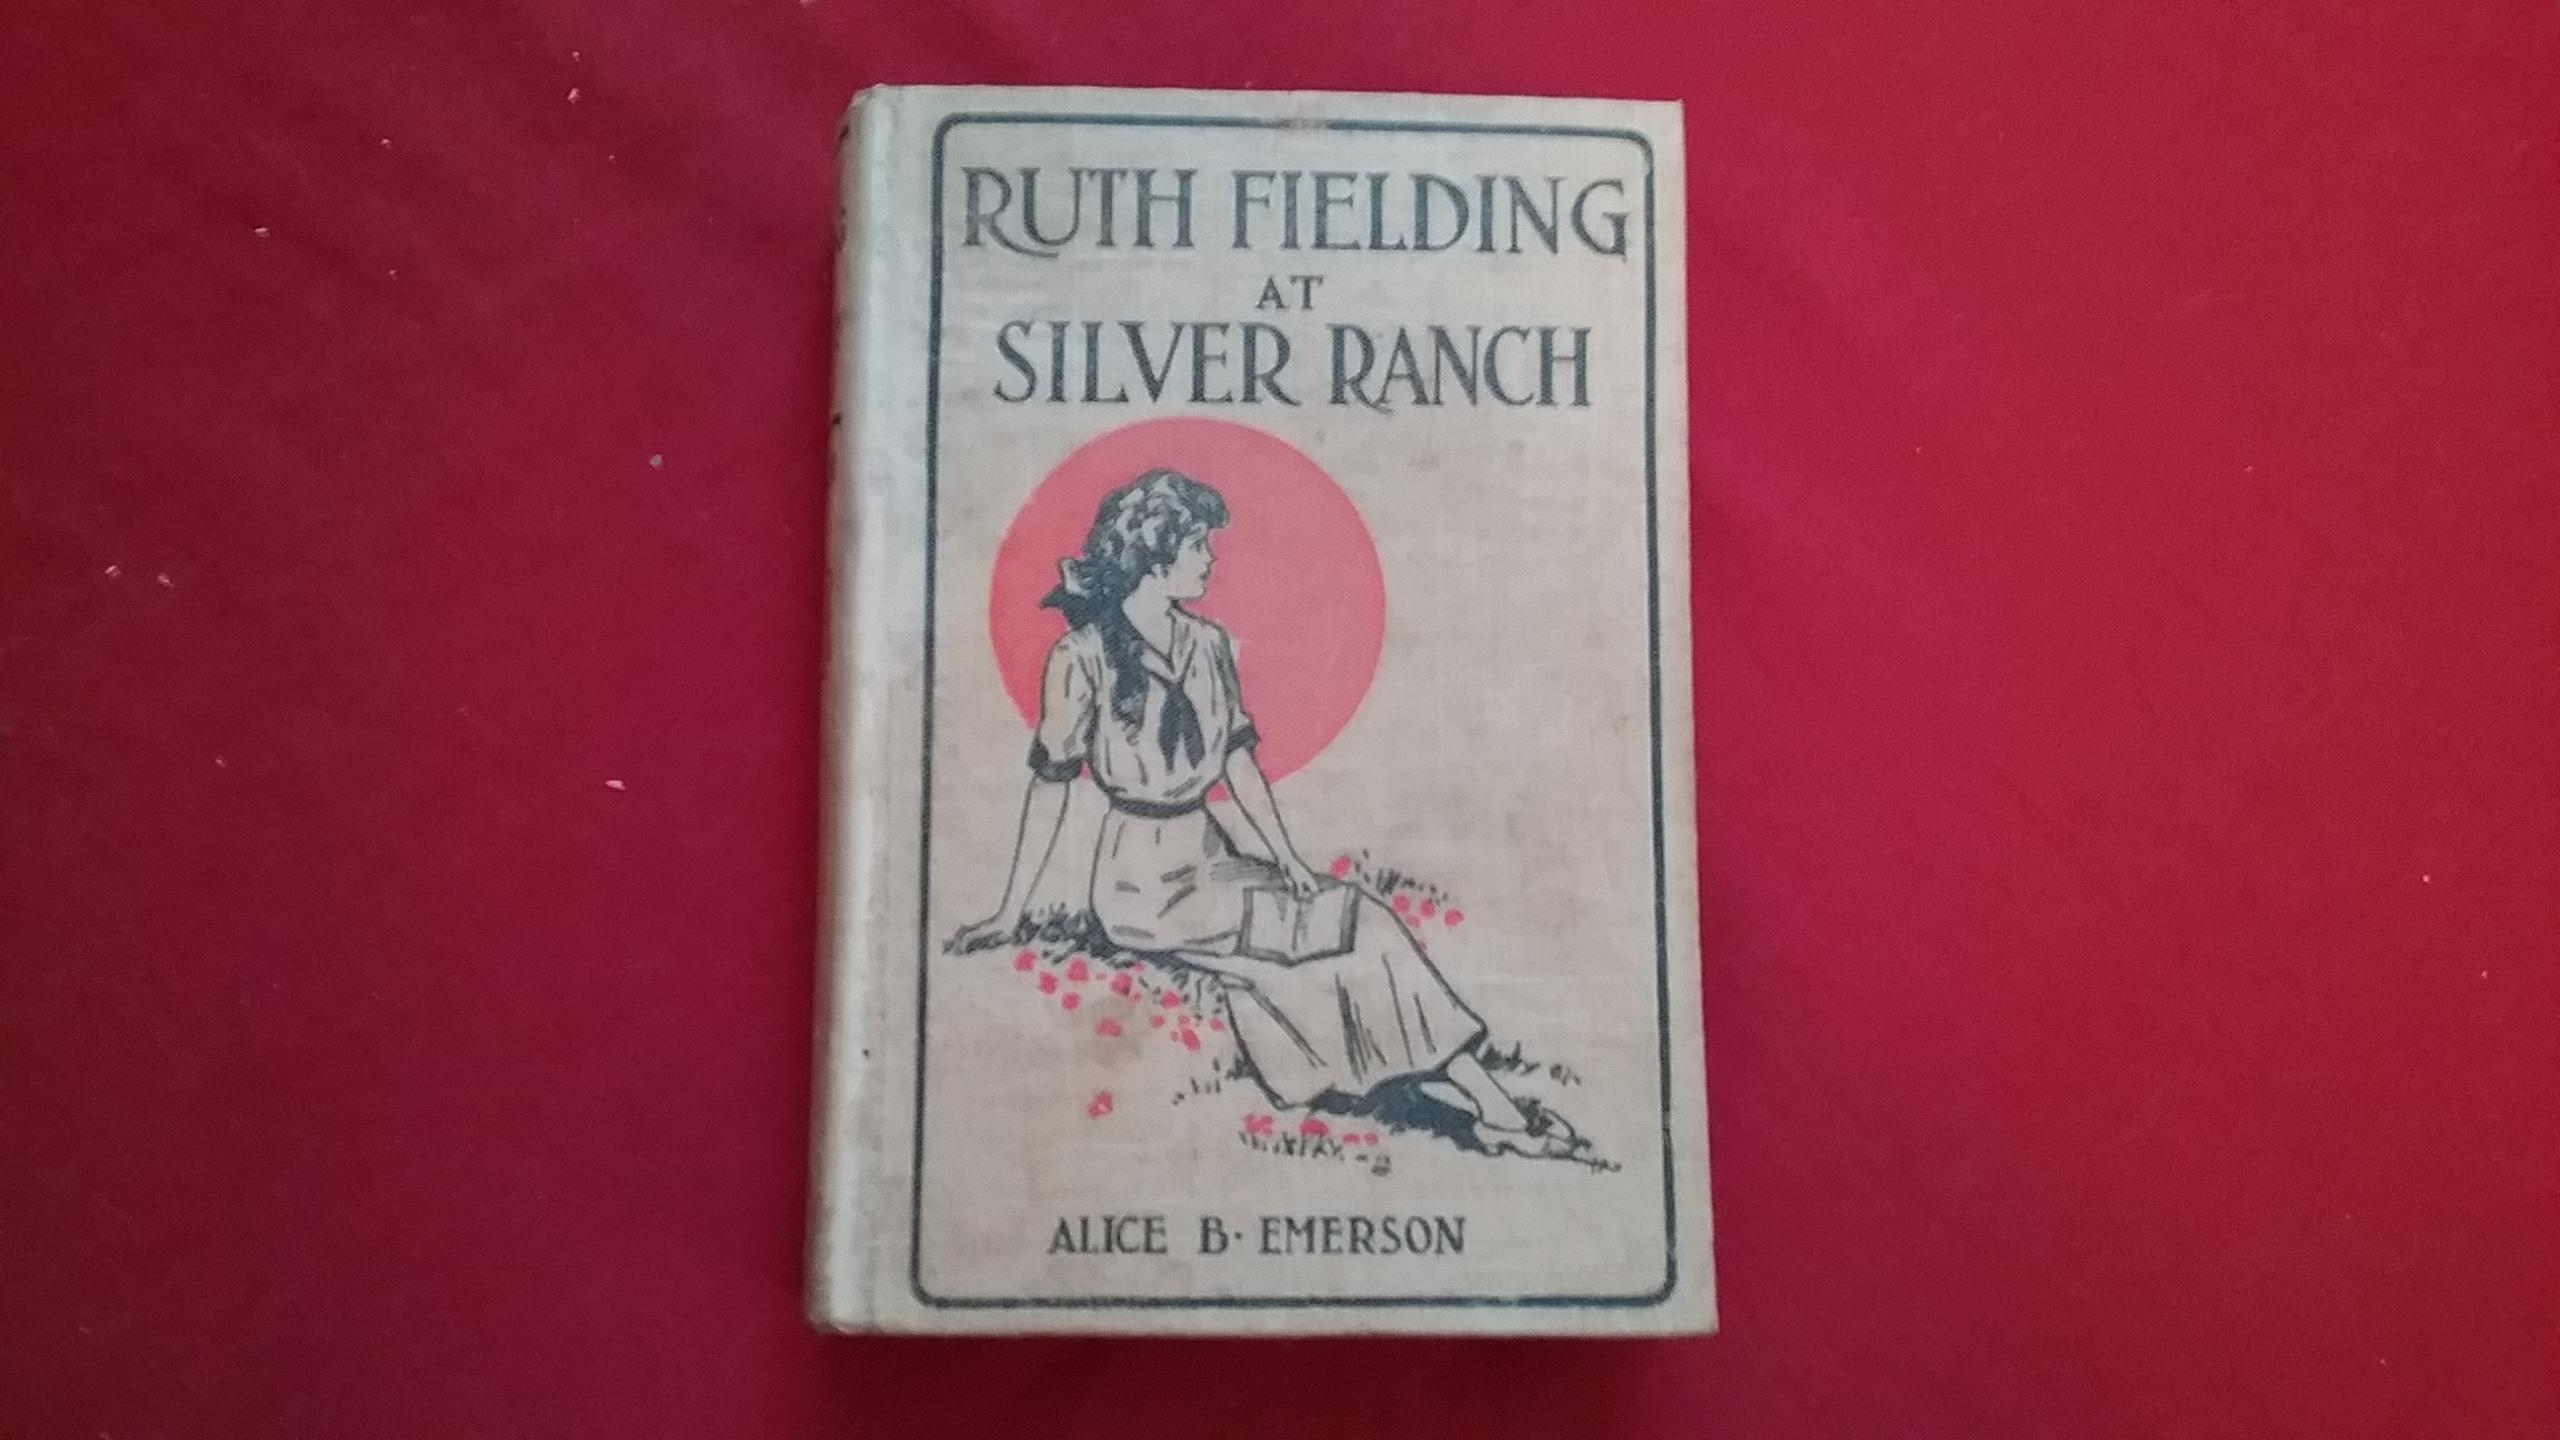 Ruth Fielding at Silver Ranch book image